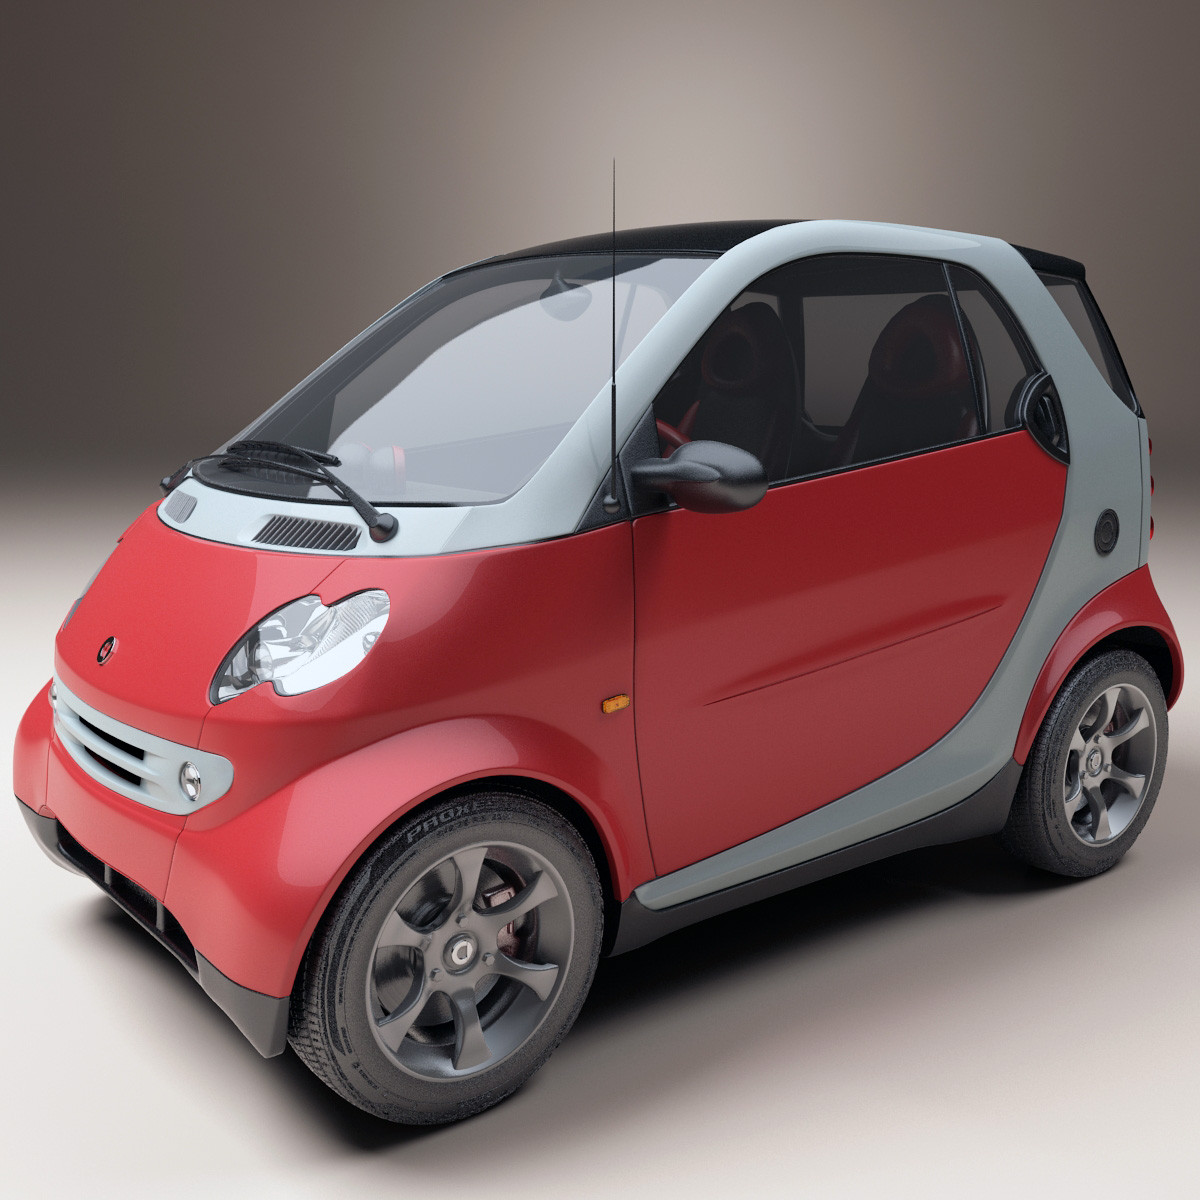 Mercedes-benz smart photo - 6